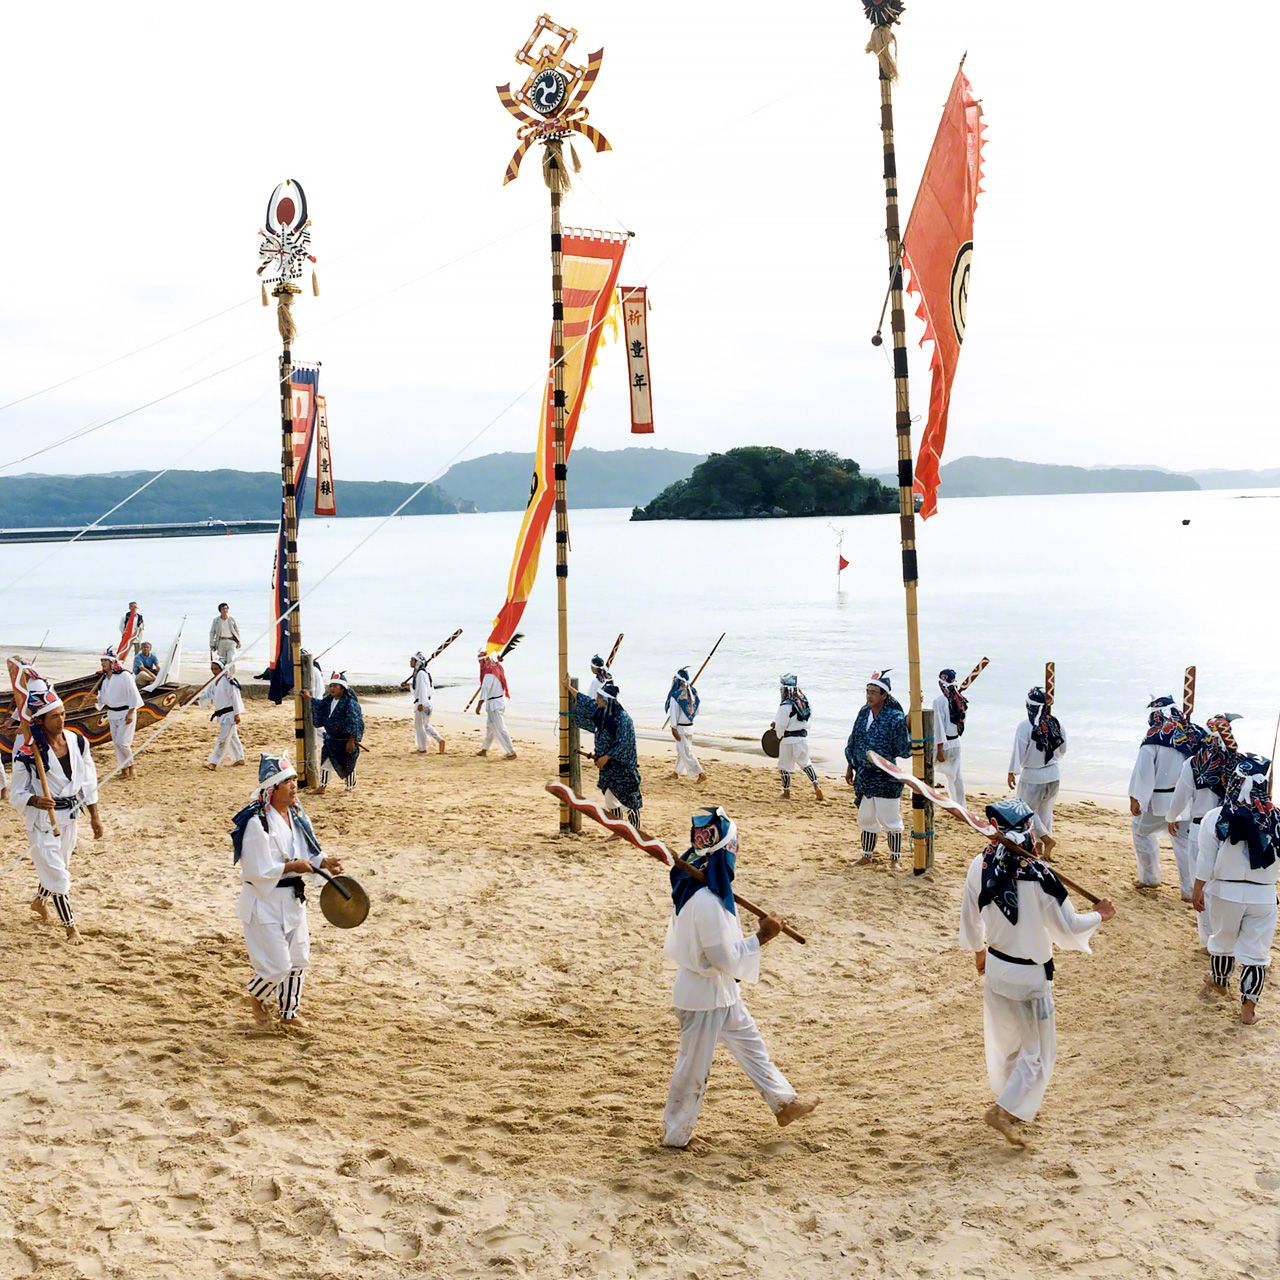 In this ceremony during an Iriomotejima festival, participants sing as they carry paddles.